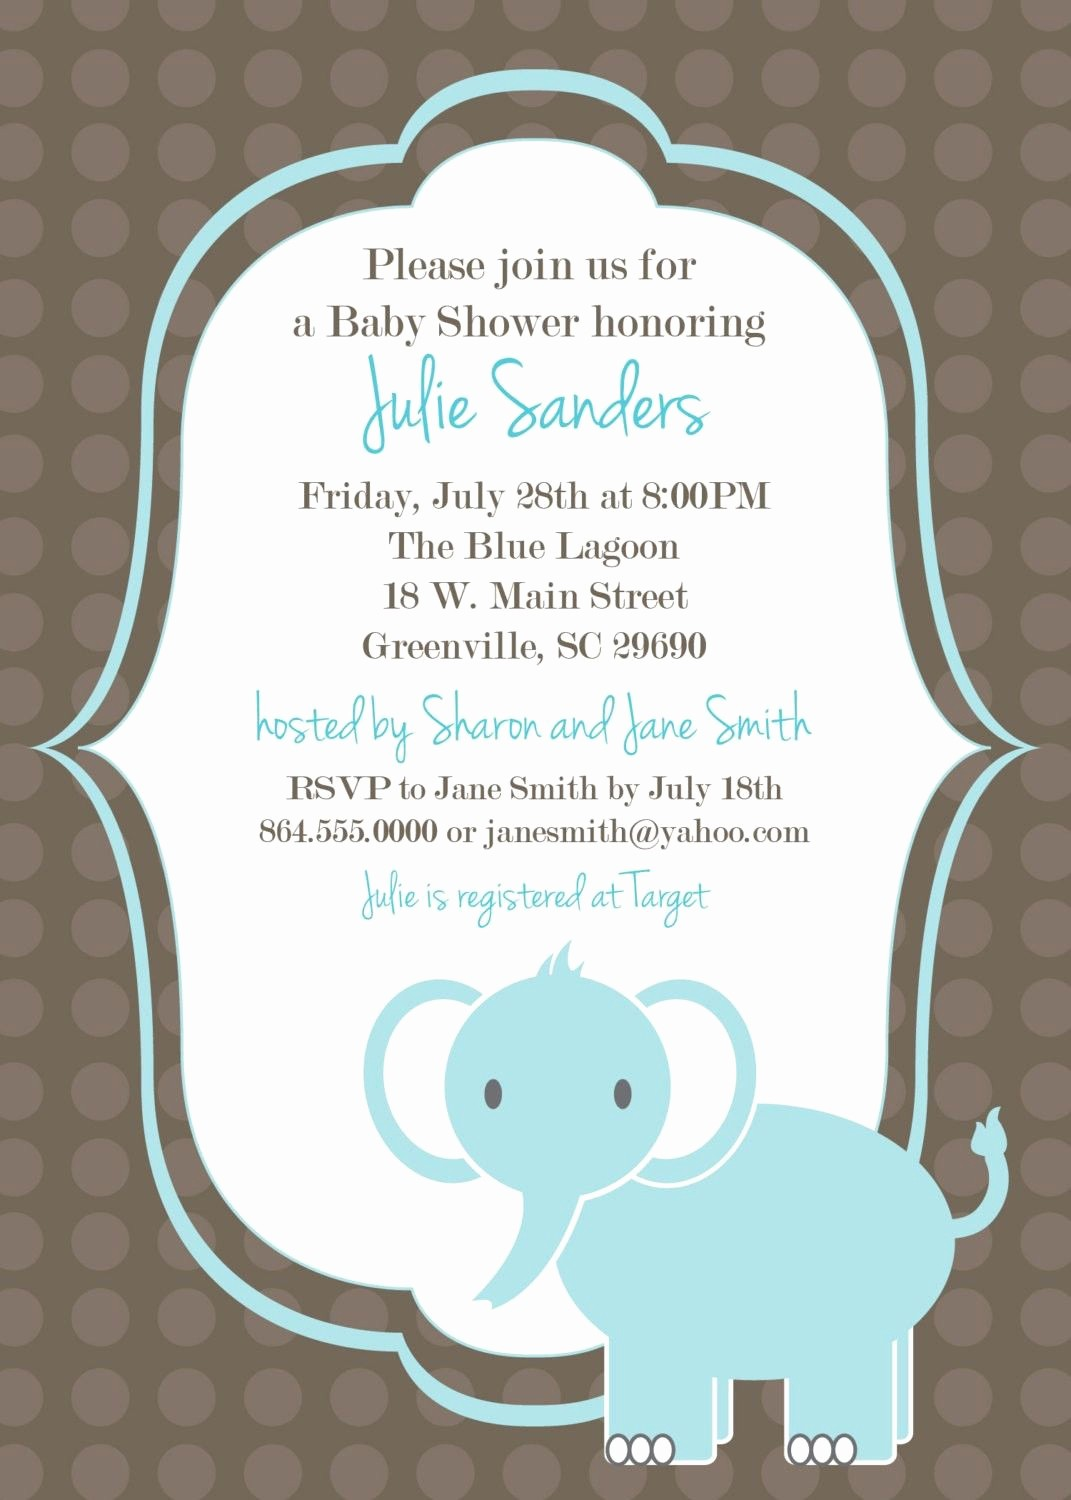 Baby Shower Invitation List Template New Download Free Template Got the Free Baby Shower